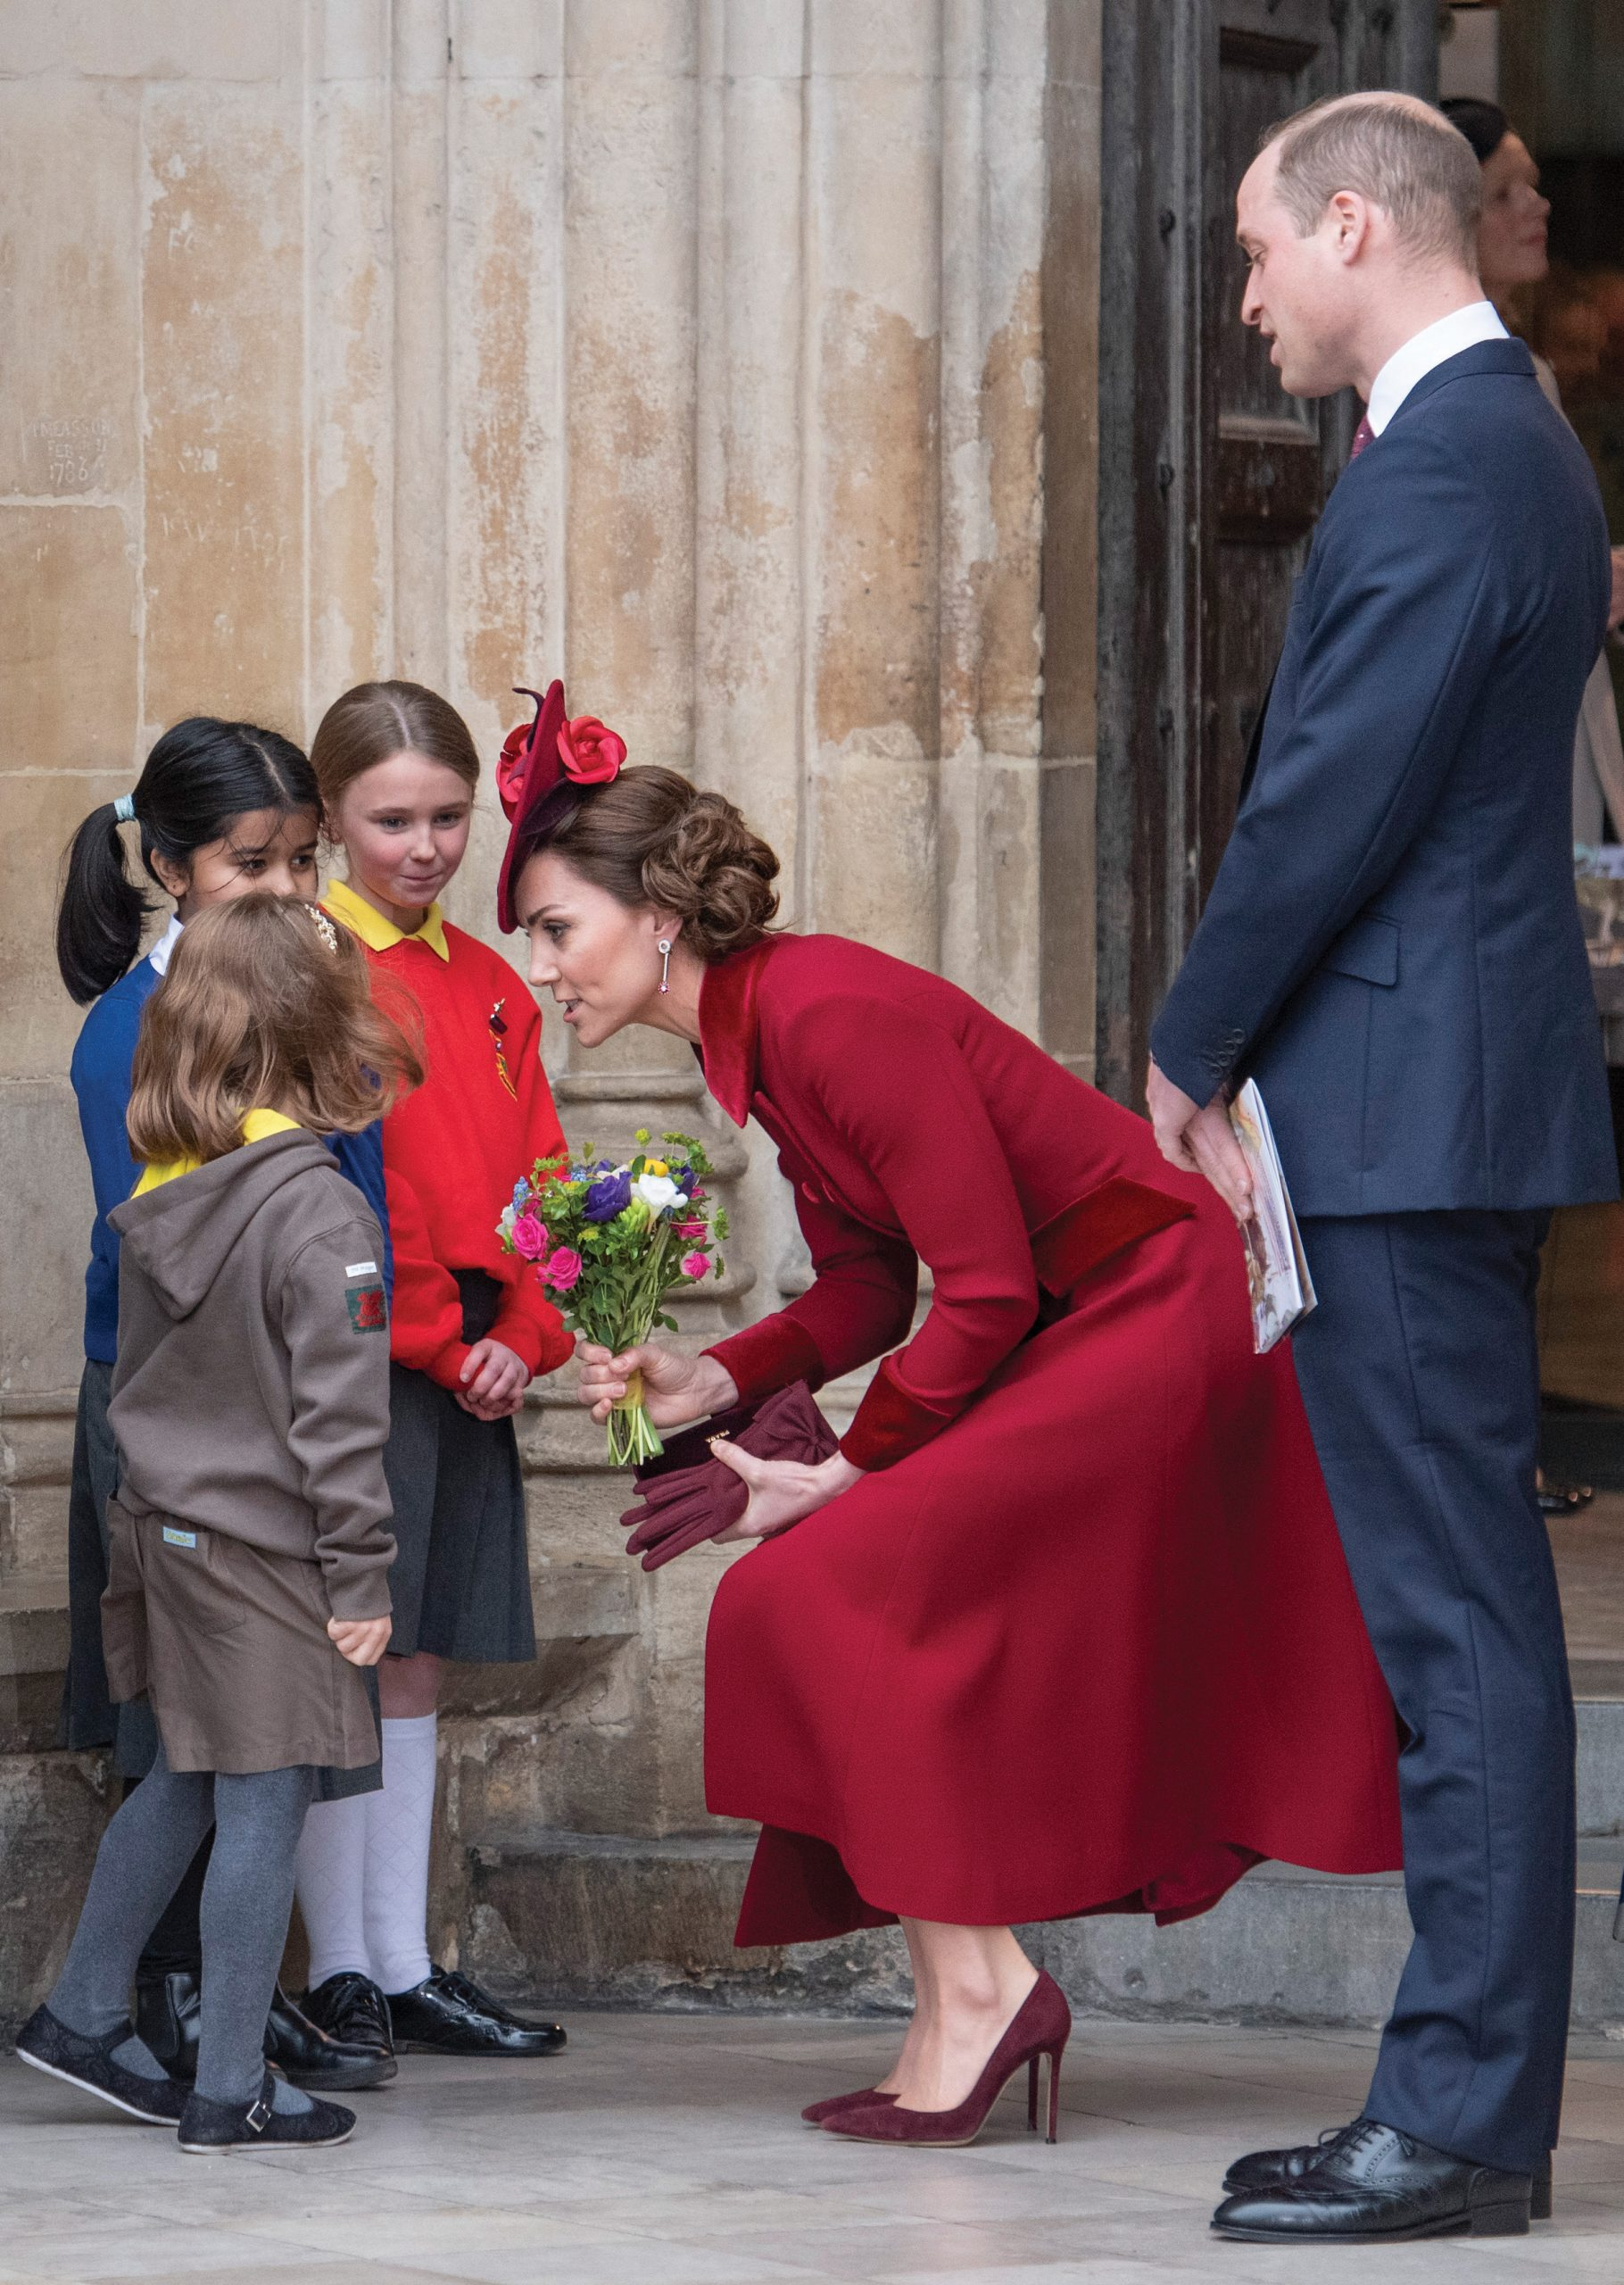 The Duke and Duchess of Cambridge at the commonwealth day ceremony